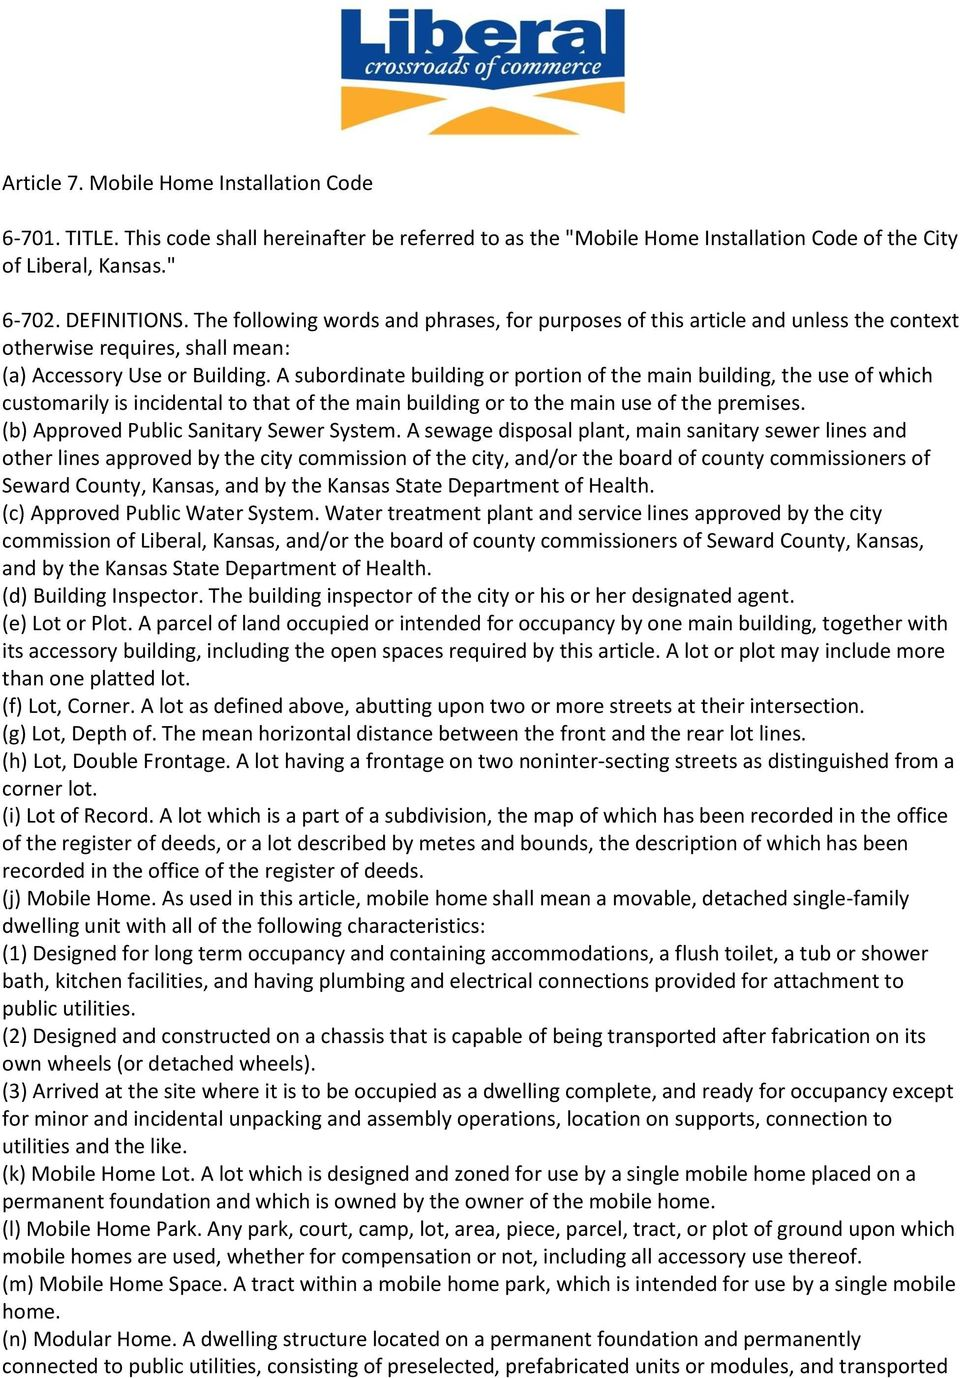 Article 7. Mobile Home Installation Code - PDF on